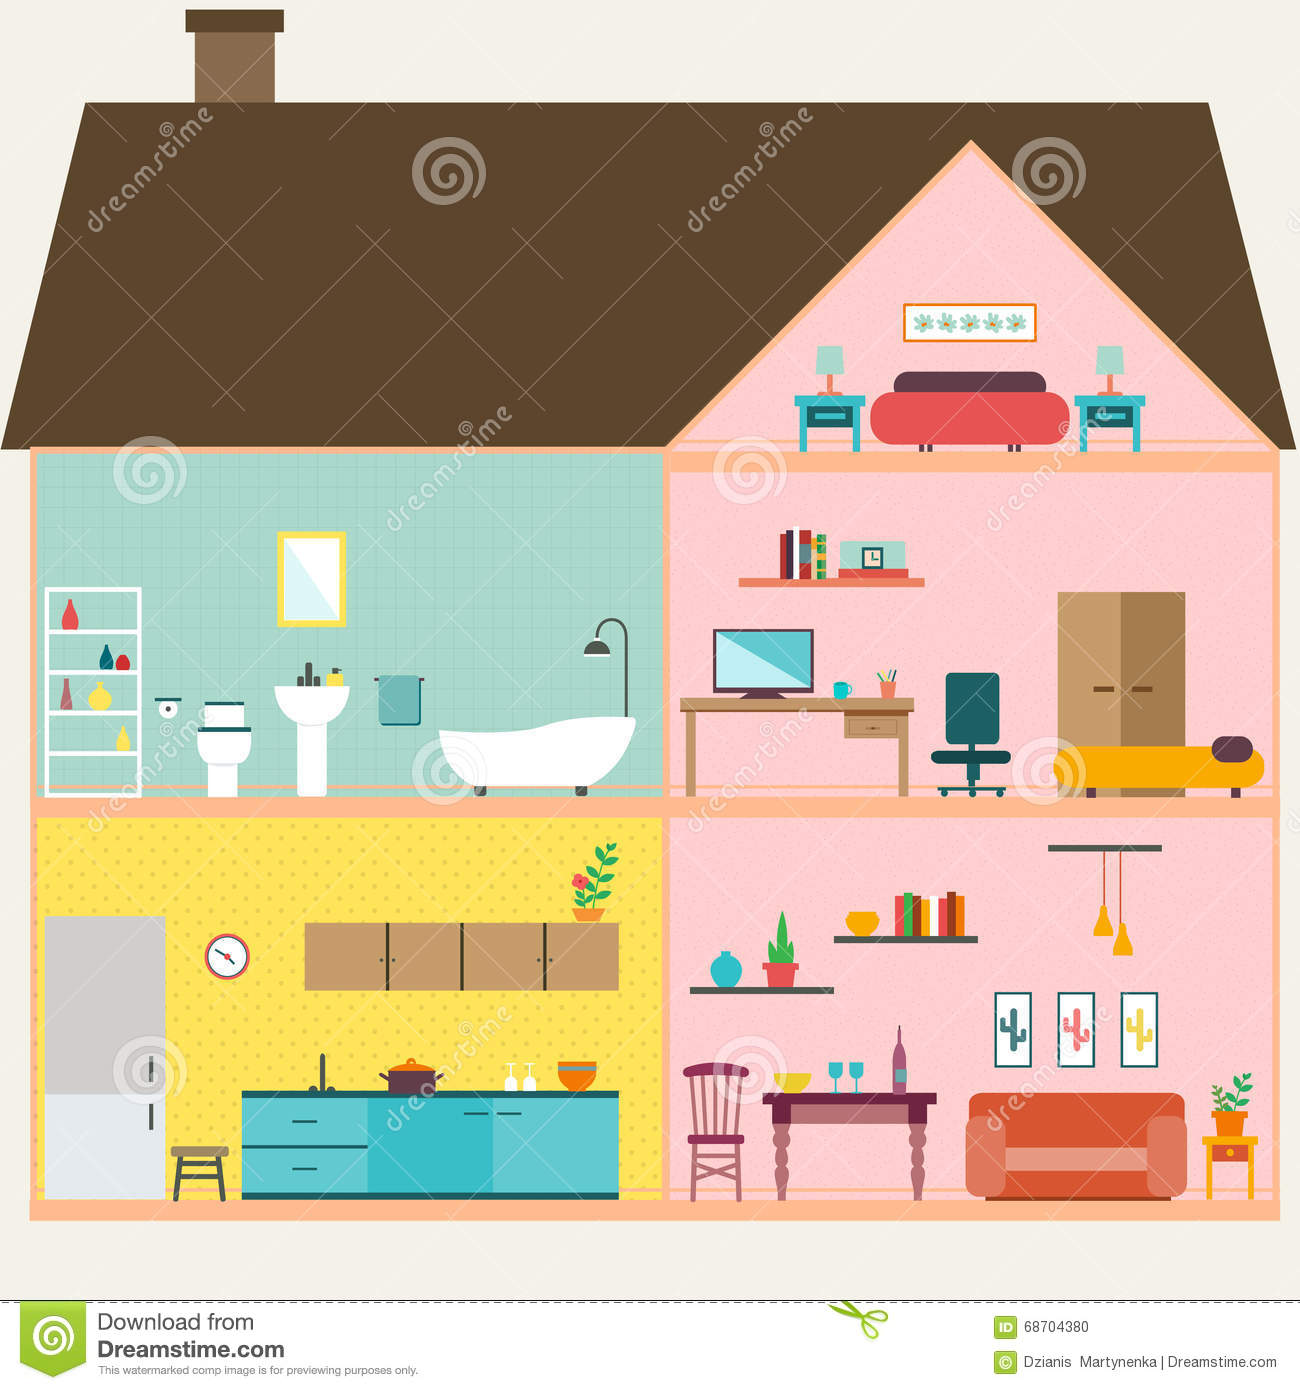 All rooms in the house rooms of homes vector art image illustration - House